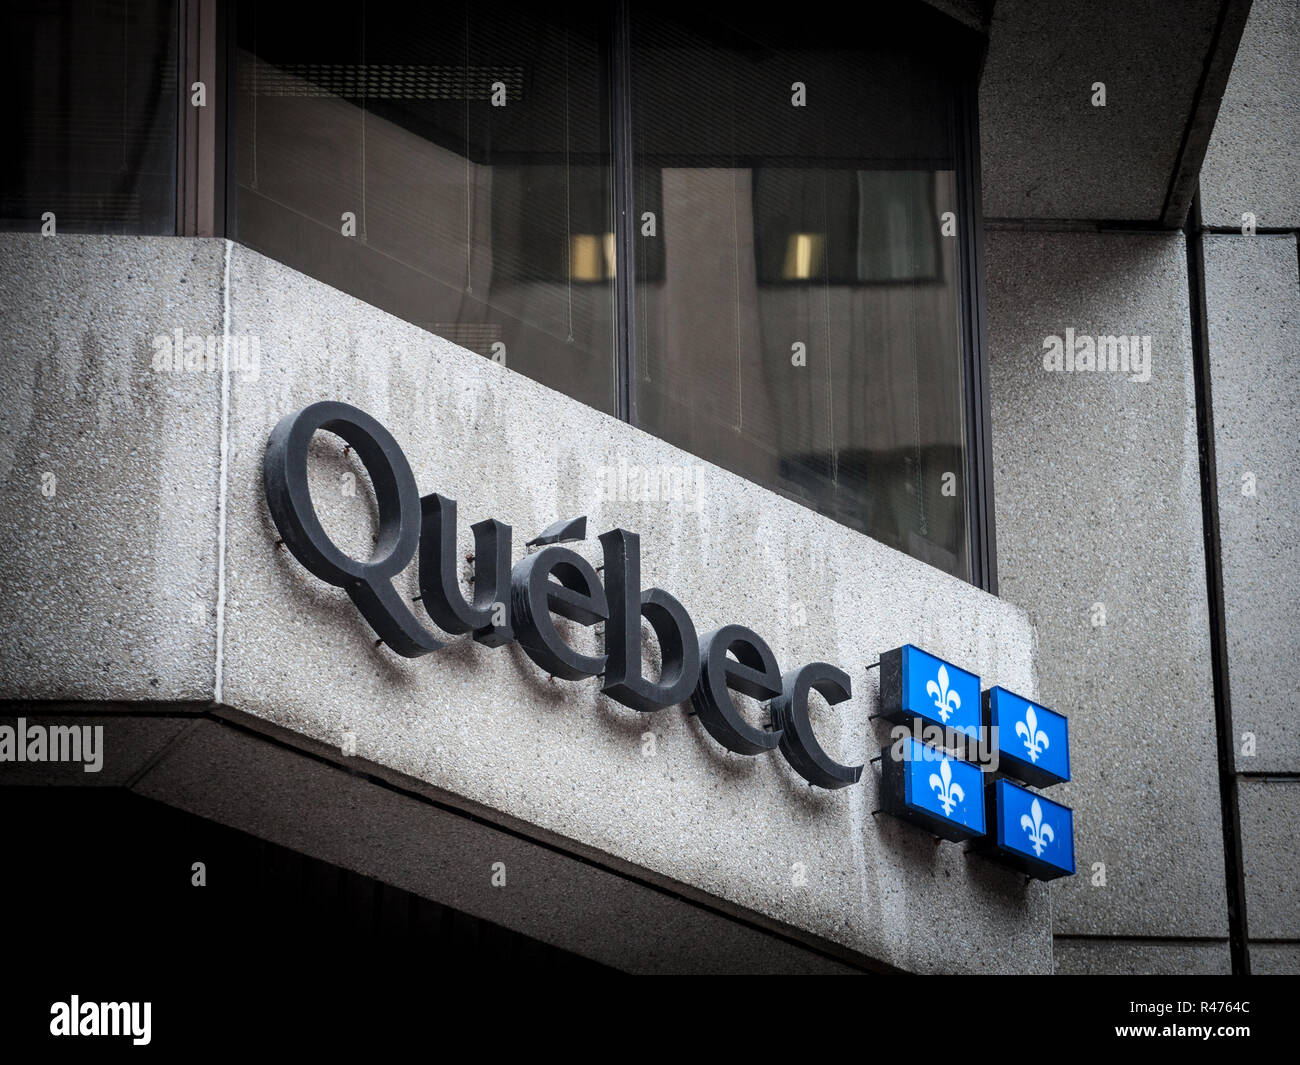 MONTREAL, CANADA - NOVEMBER 3, 2018: Logo of the provincial government of Quebec (Gouvernement du Quebec) on administrative building. Quebec is the ma - Stock Image